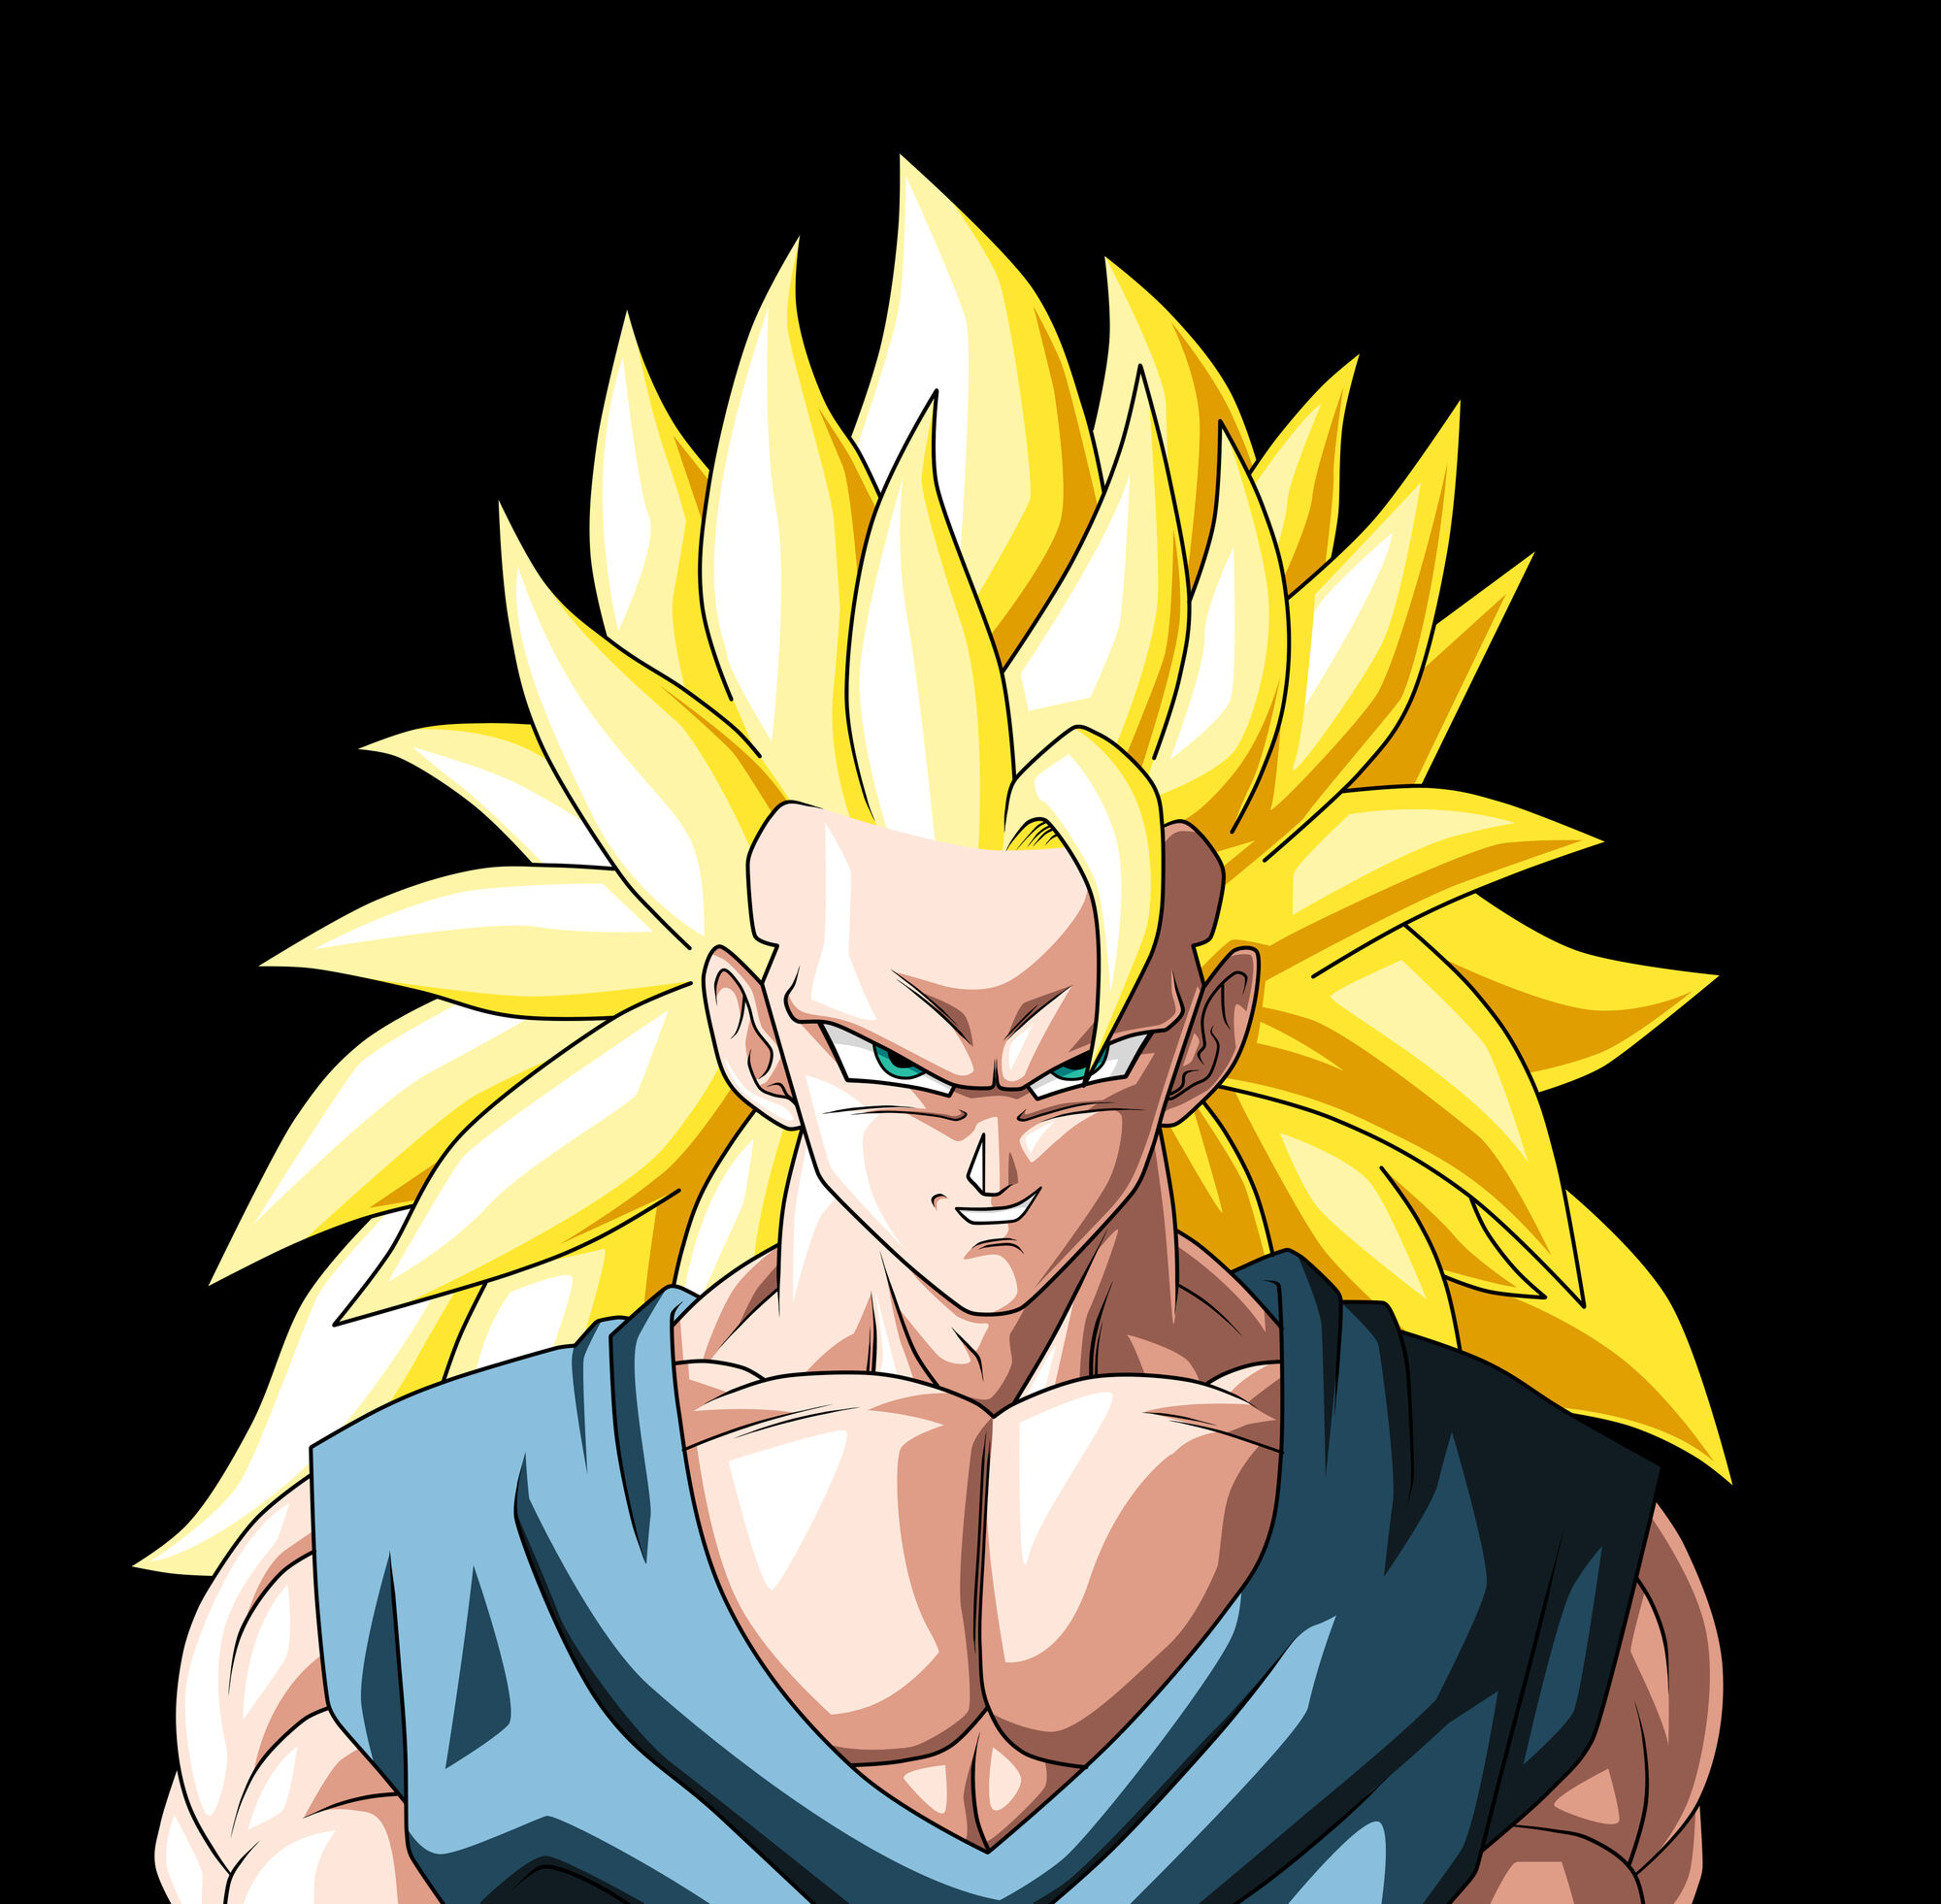 Full power super saiyan 3 dragonball fanon wiki fandom - Goku 5 super saiyan ...